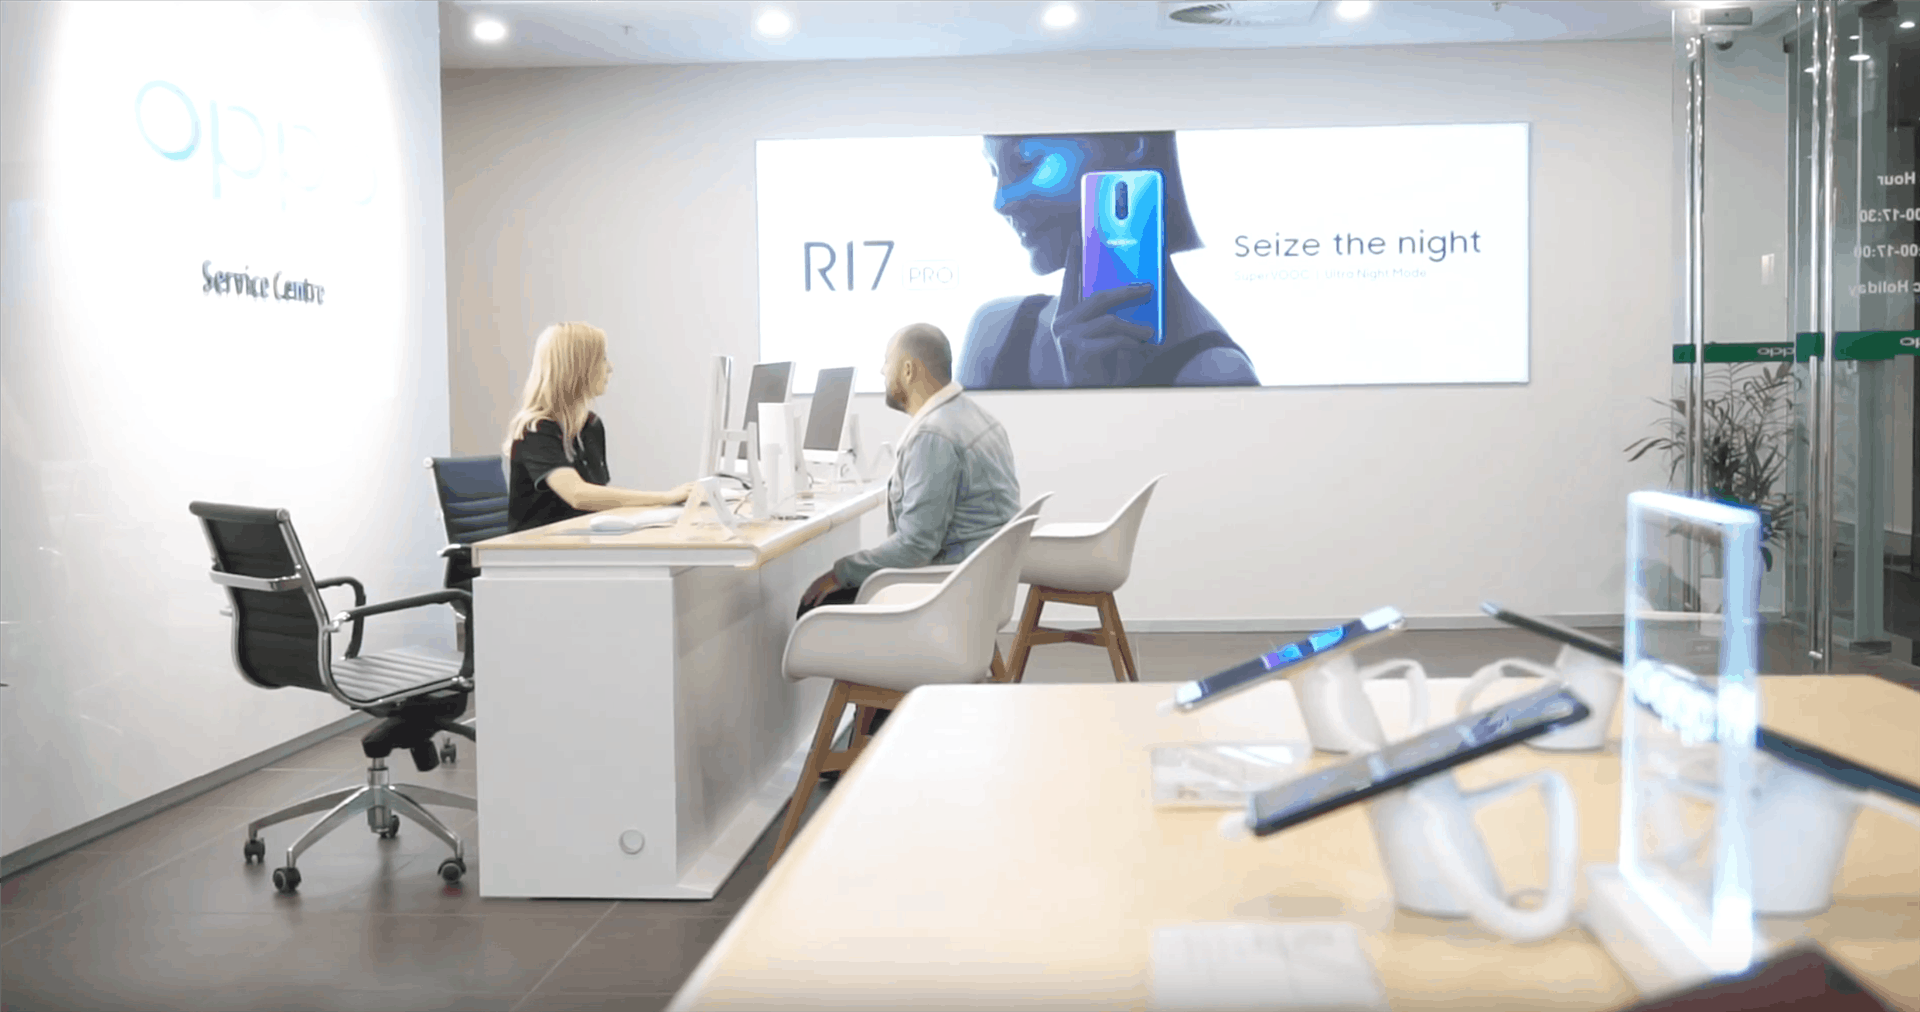 OPPO service centre in Melbourne is now open